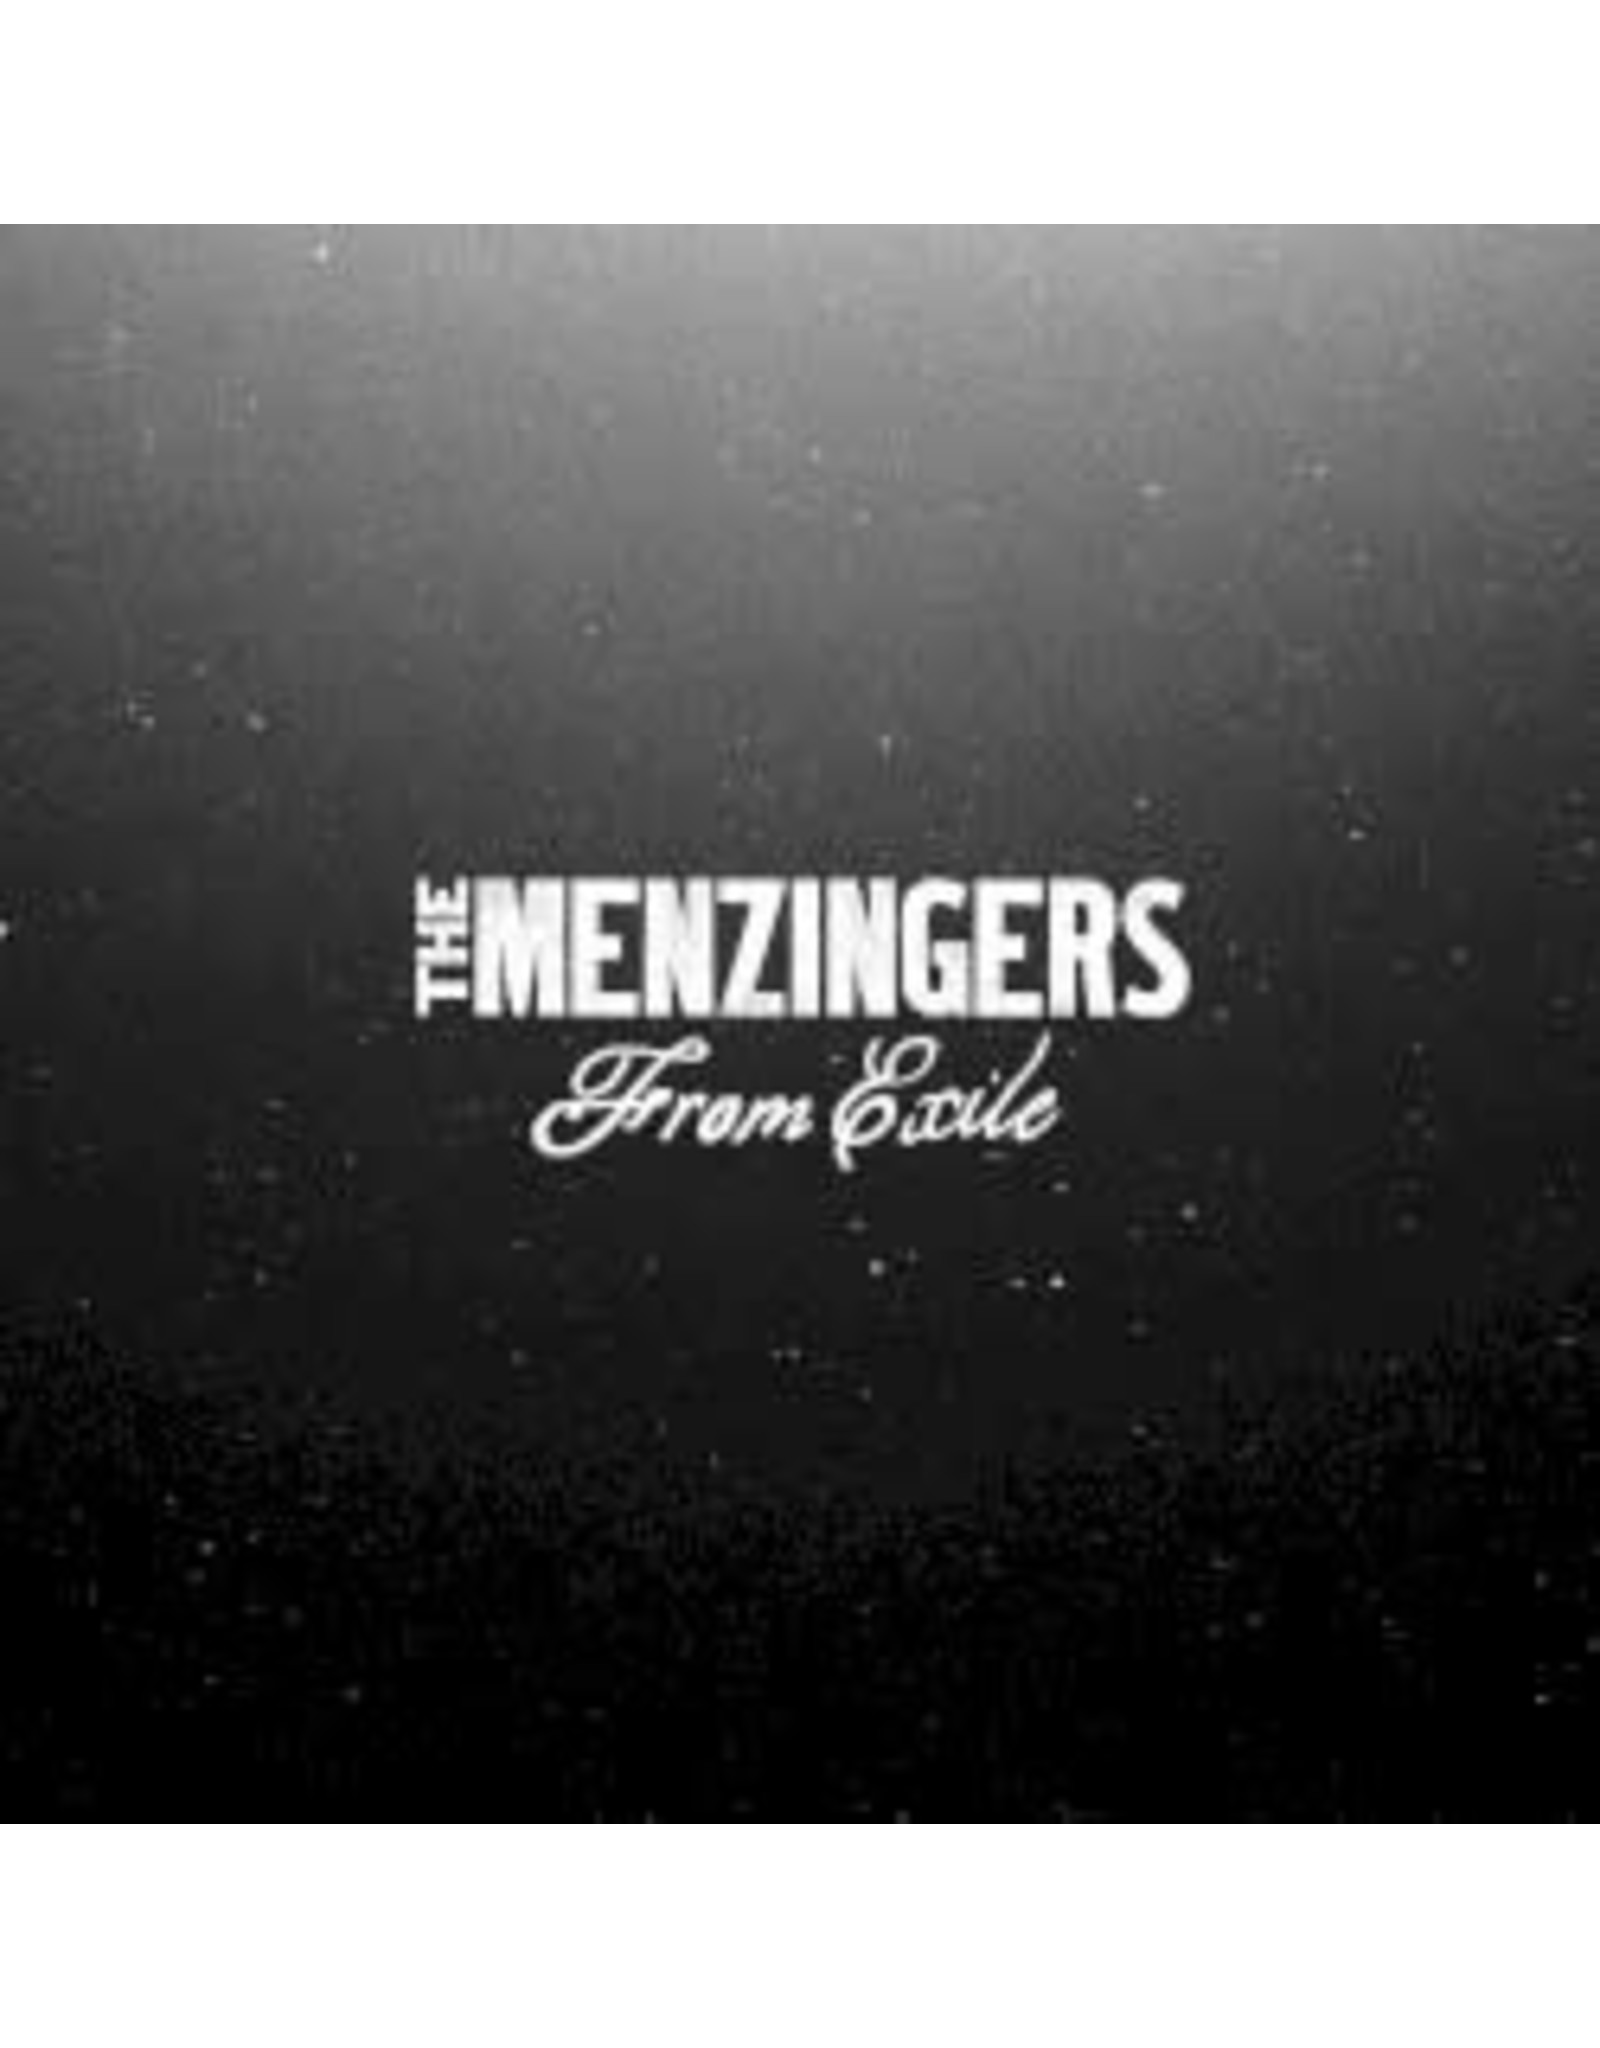 Menzingers - From Exile LP (indie tan vinyl)